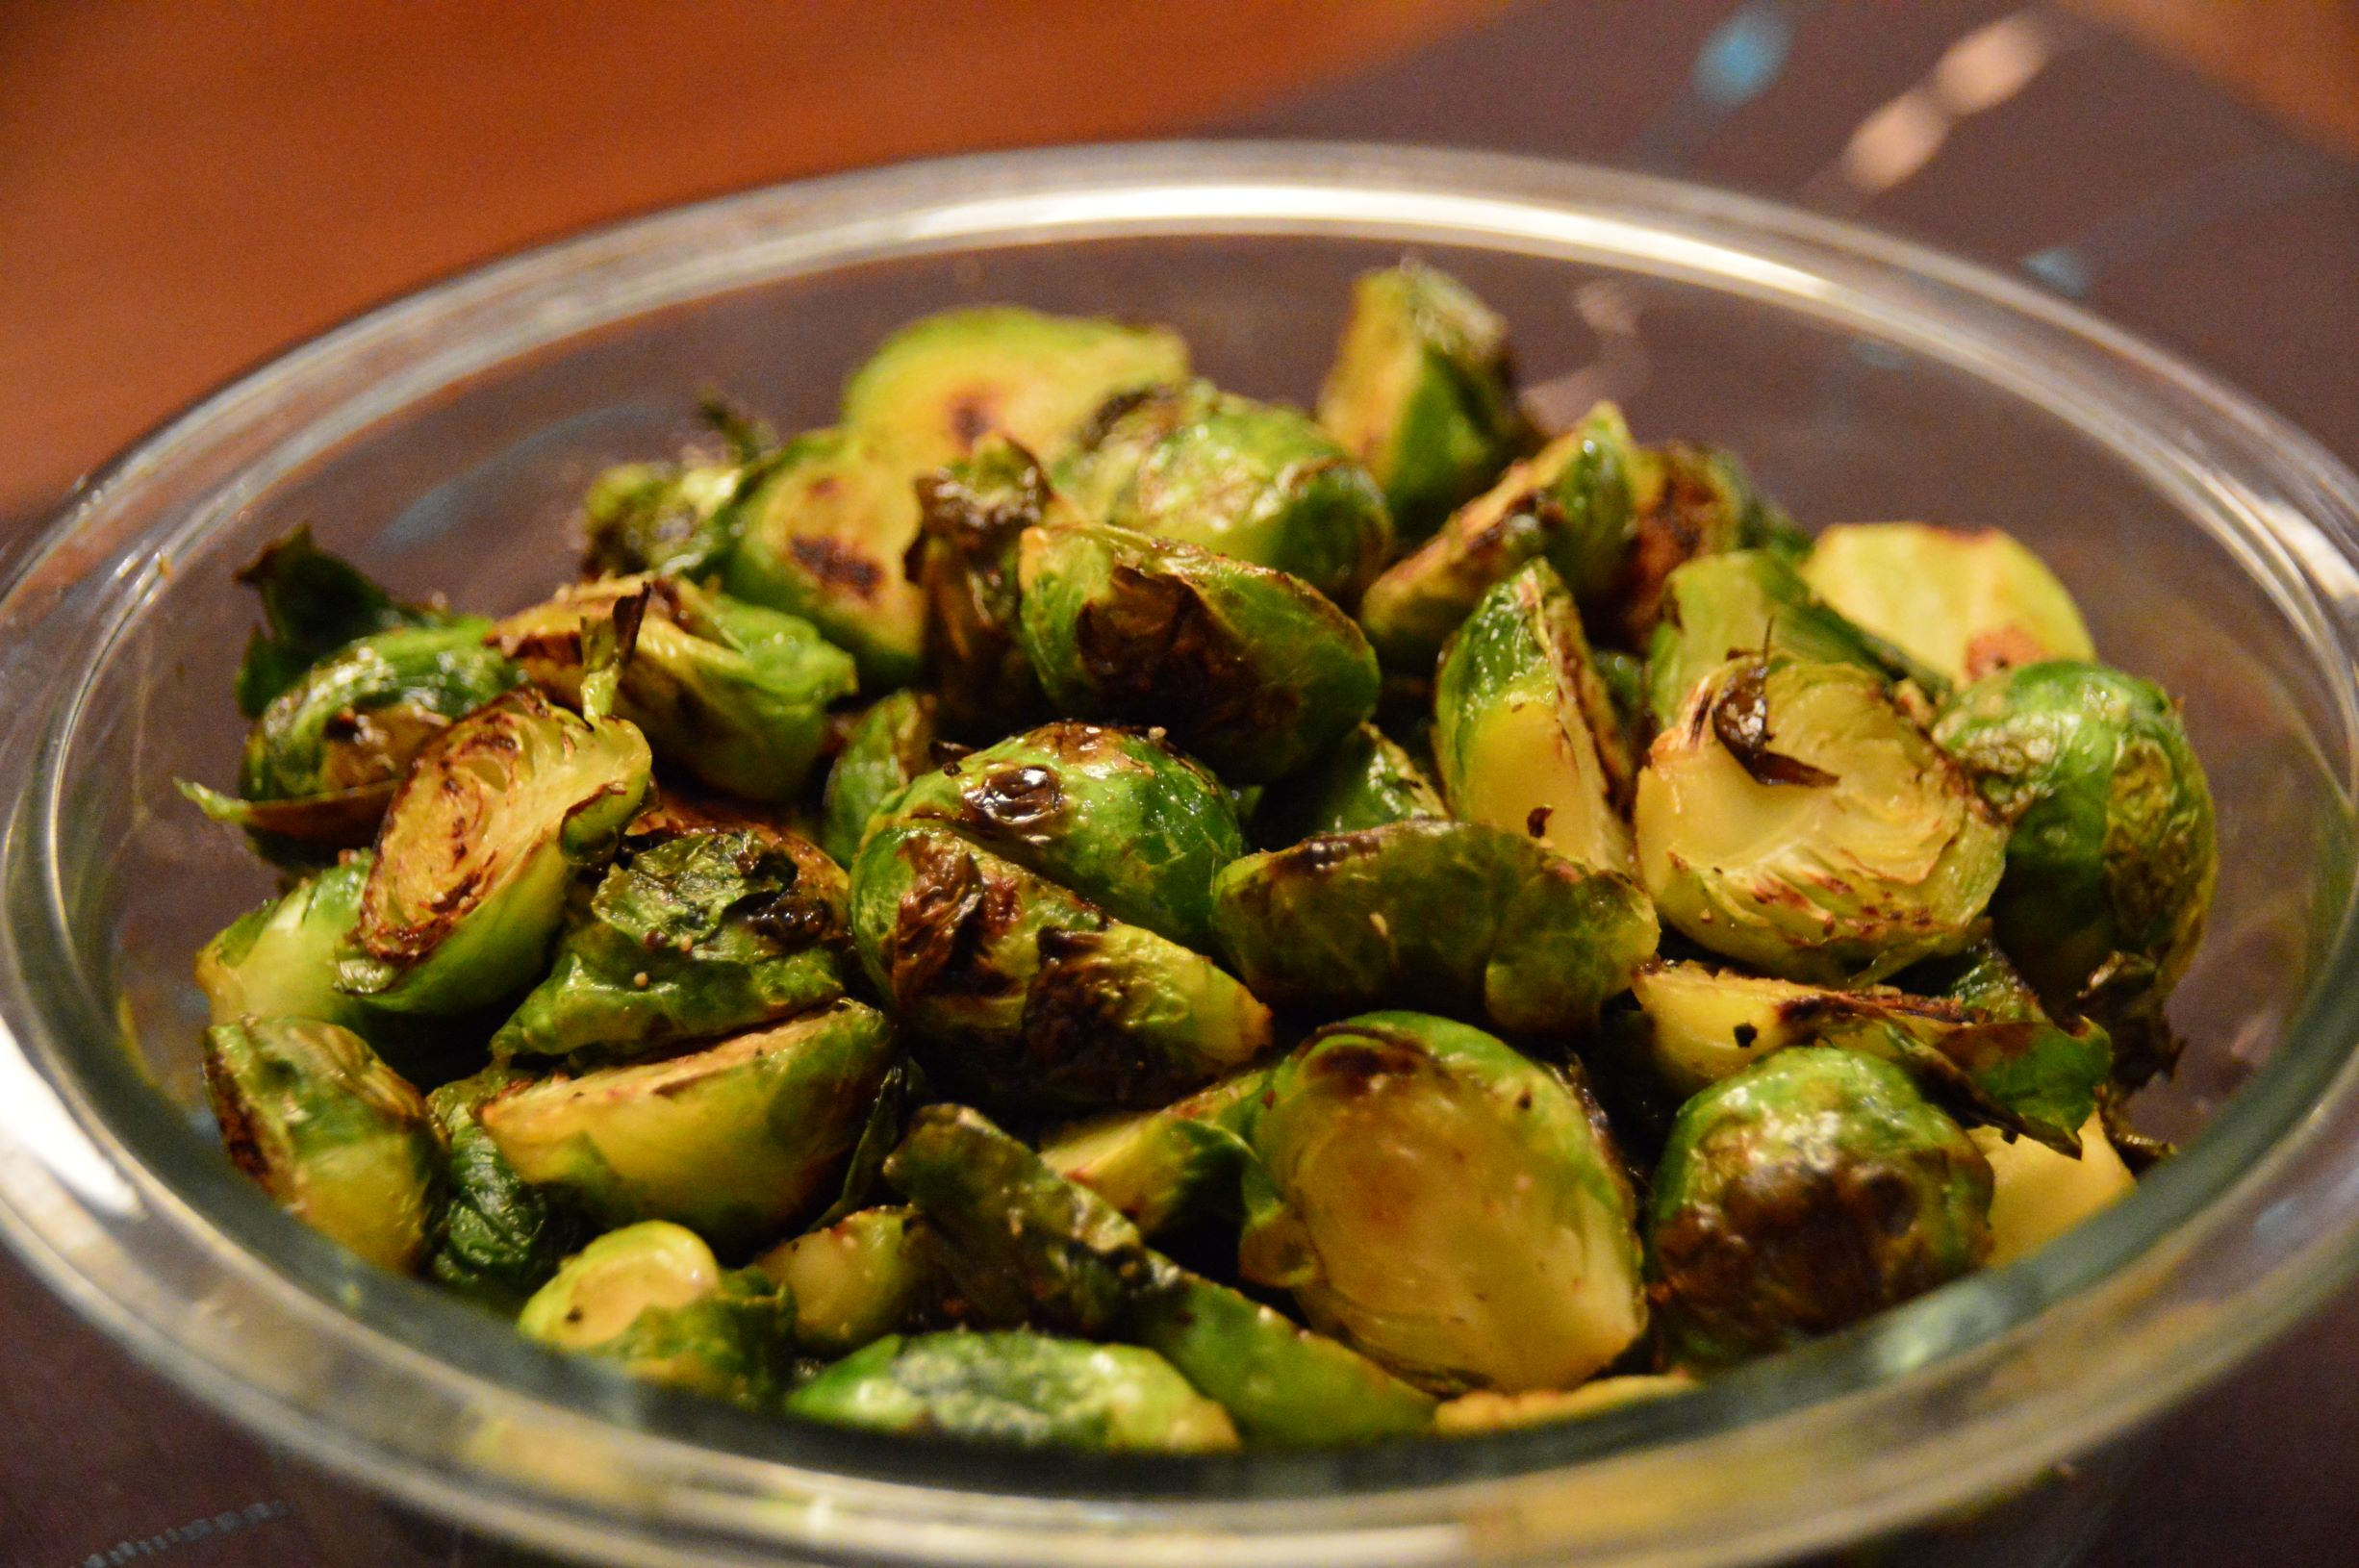 Caramelized Maple Brussel Sprouts